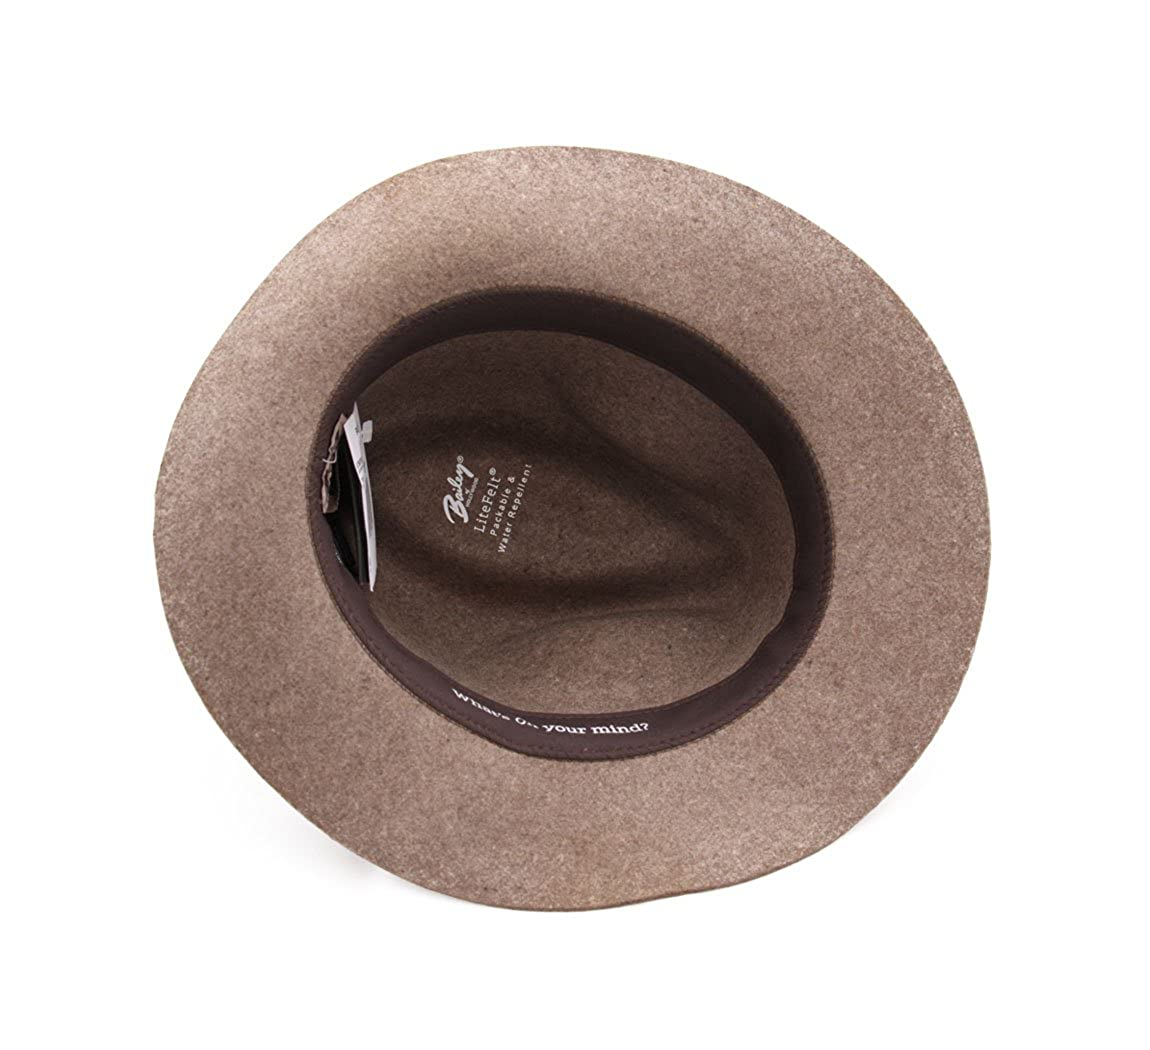 Bailey of Hollywood Atmore Wool Felt Fedora Hat Packable Water Repellent